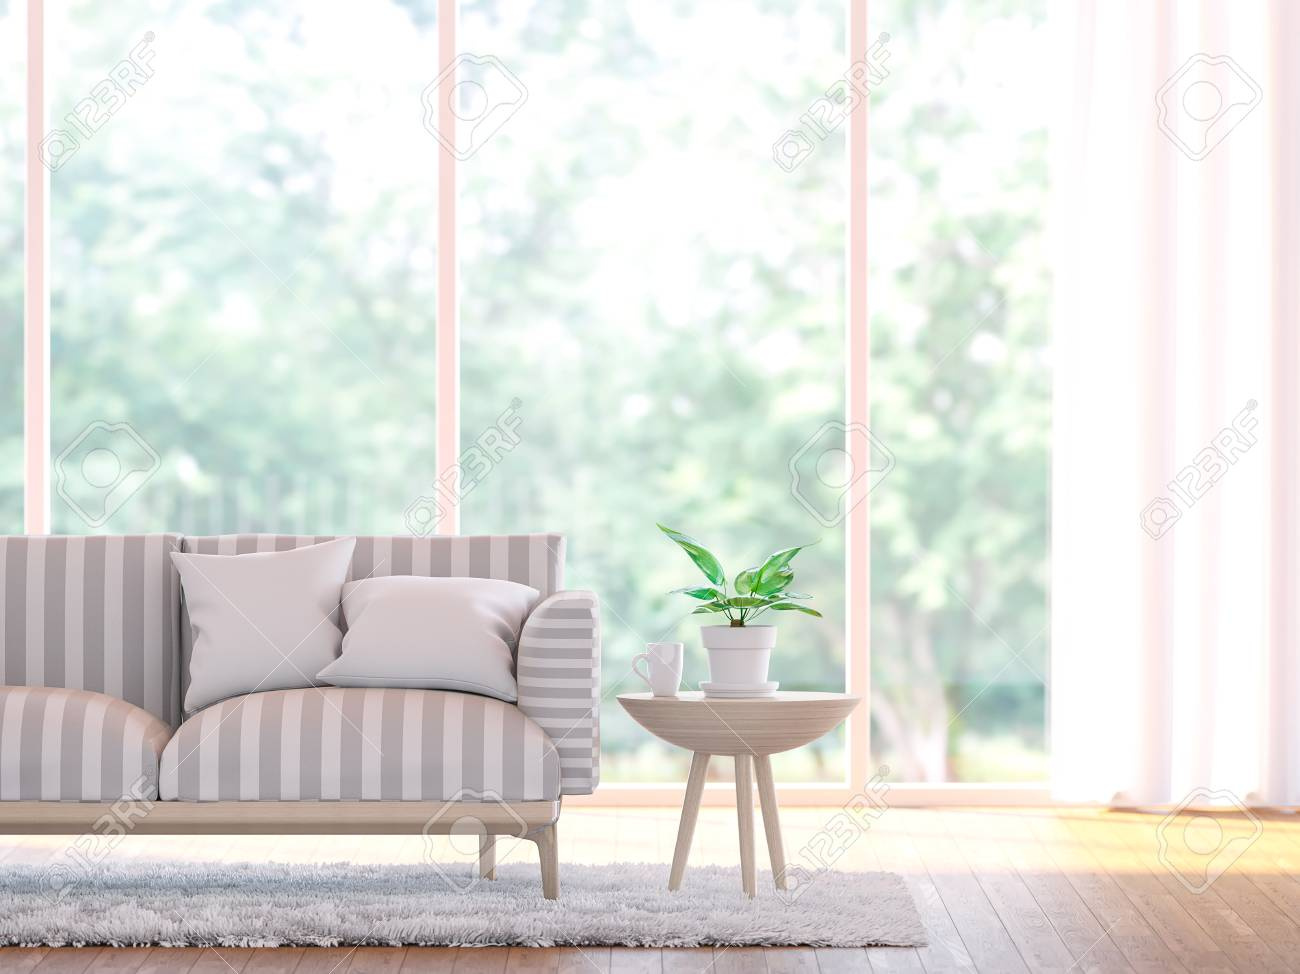 Modern living room close up 3d rendering image.There wooden floor and large window overlooking to nature and forest - 77168370